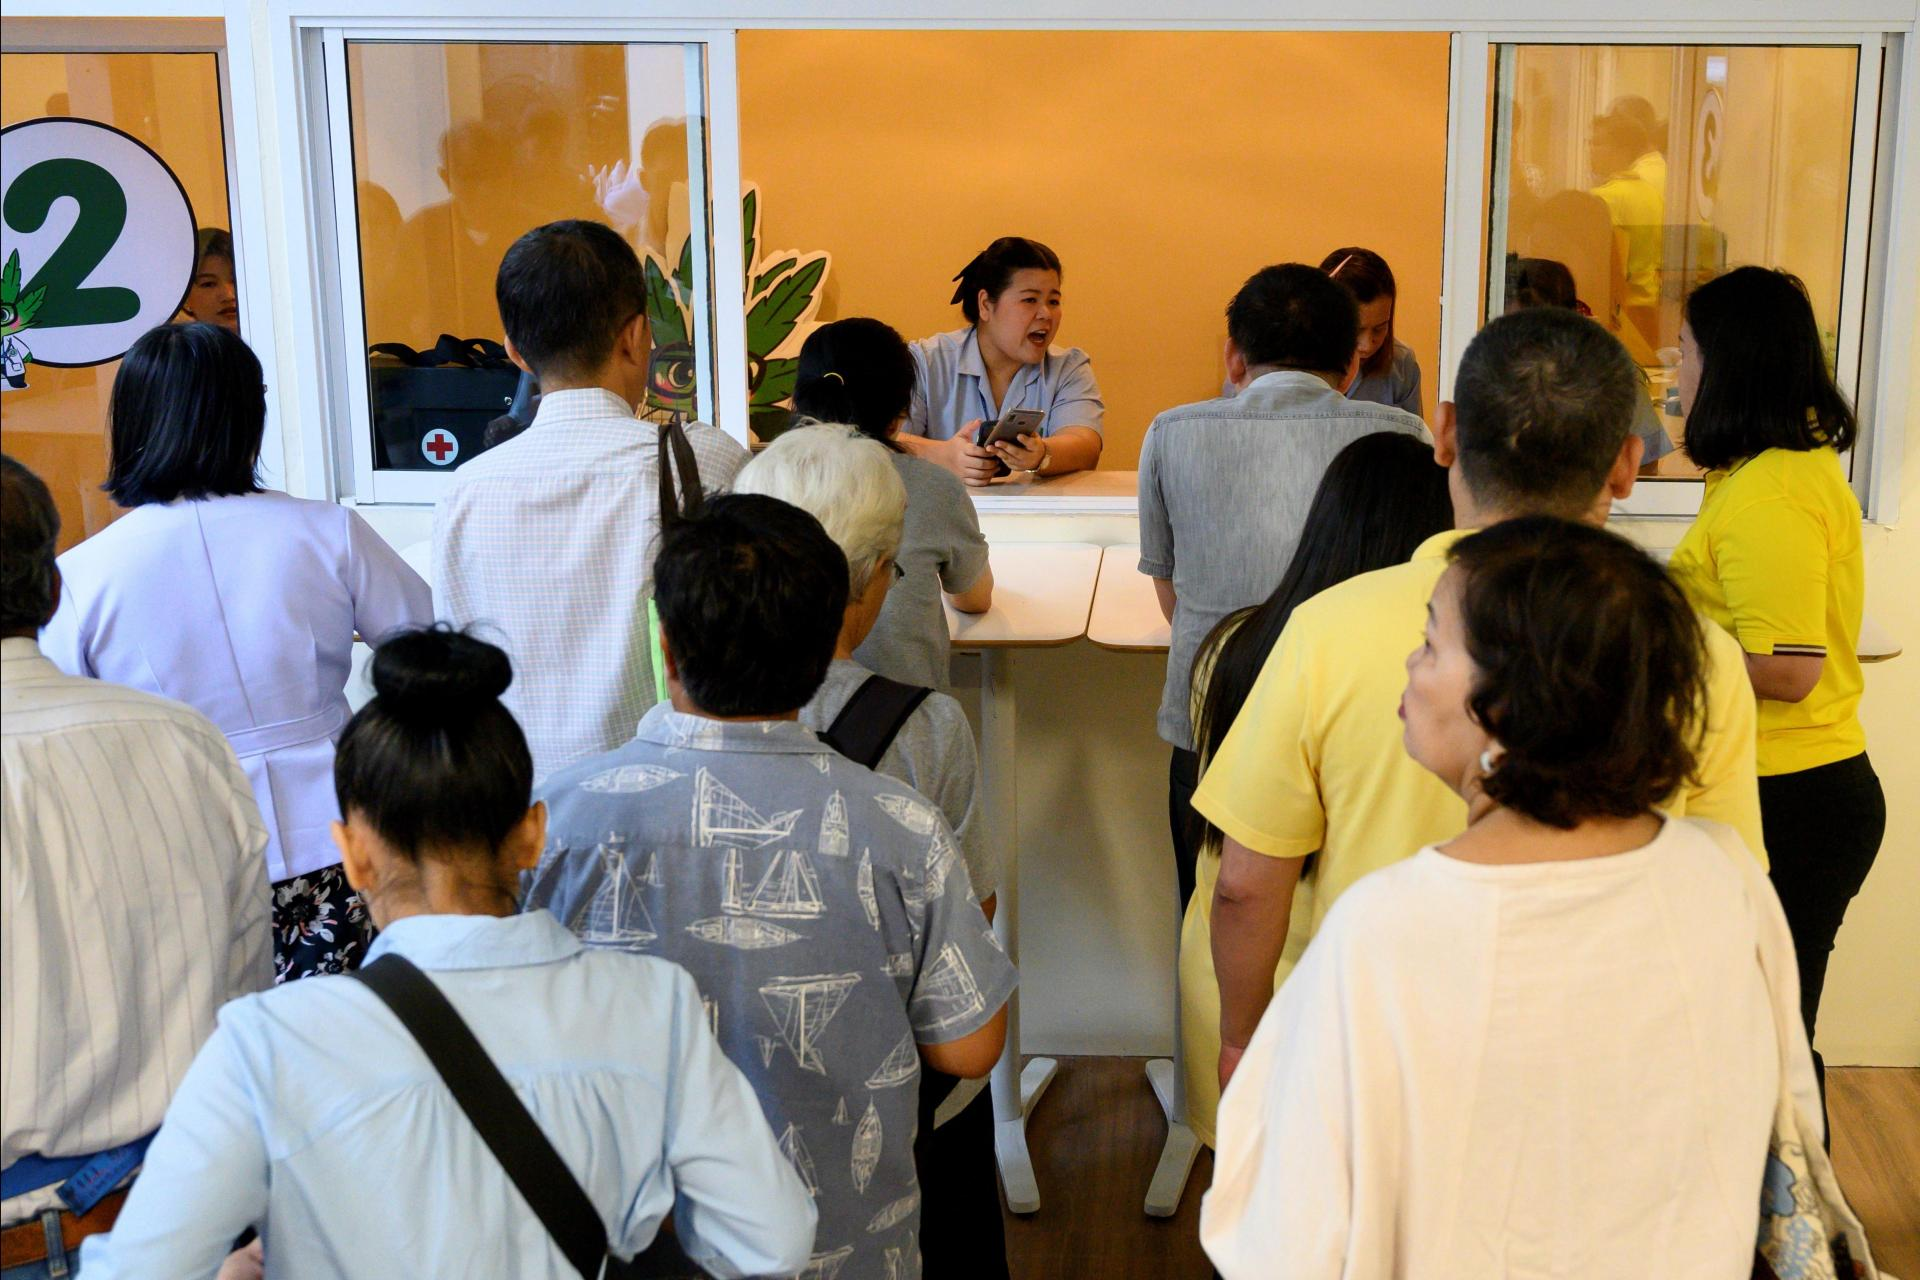 Patients waiting to register for cannabidiol (CBD) oil treatment during the opening of the marijuana clinic on Monday, 6 January.